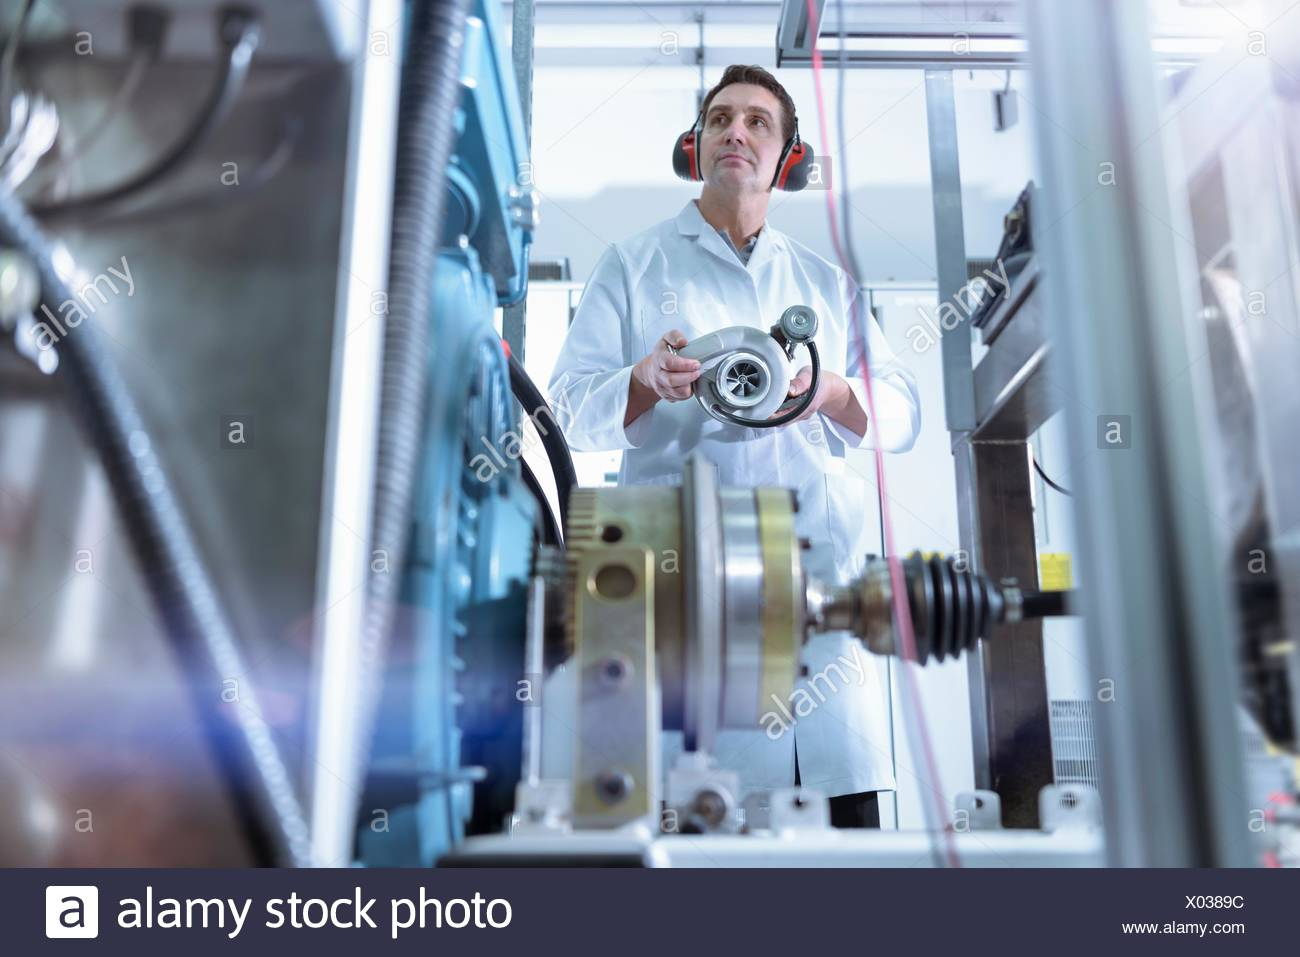 Scientist in turbo charger automotive research laboratory - Stock Image